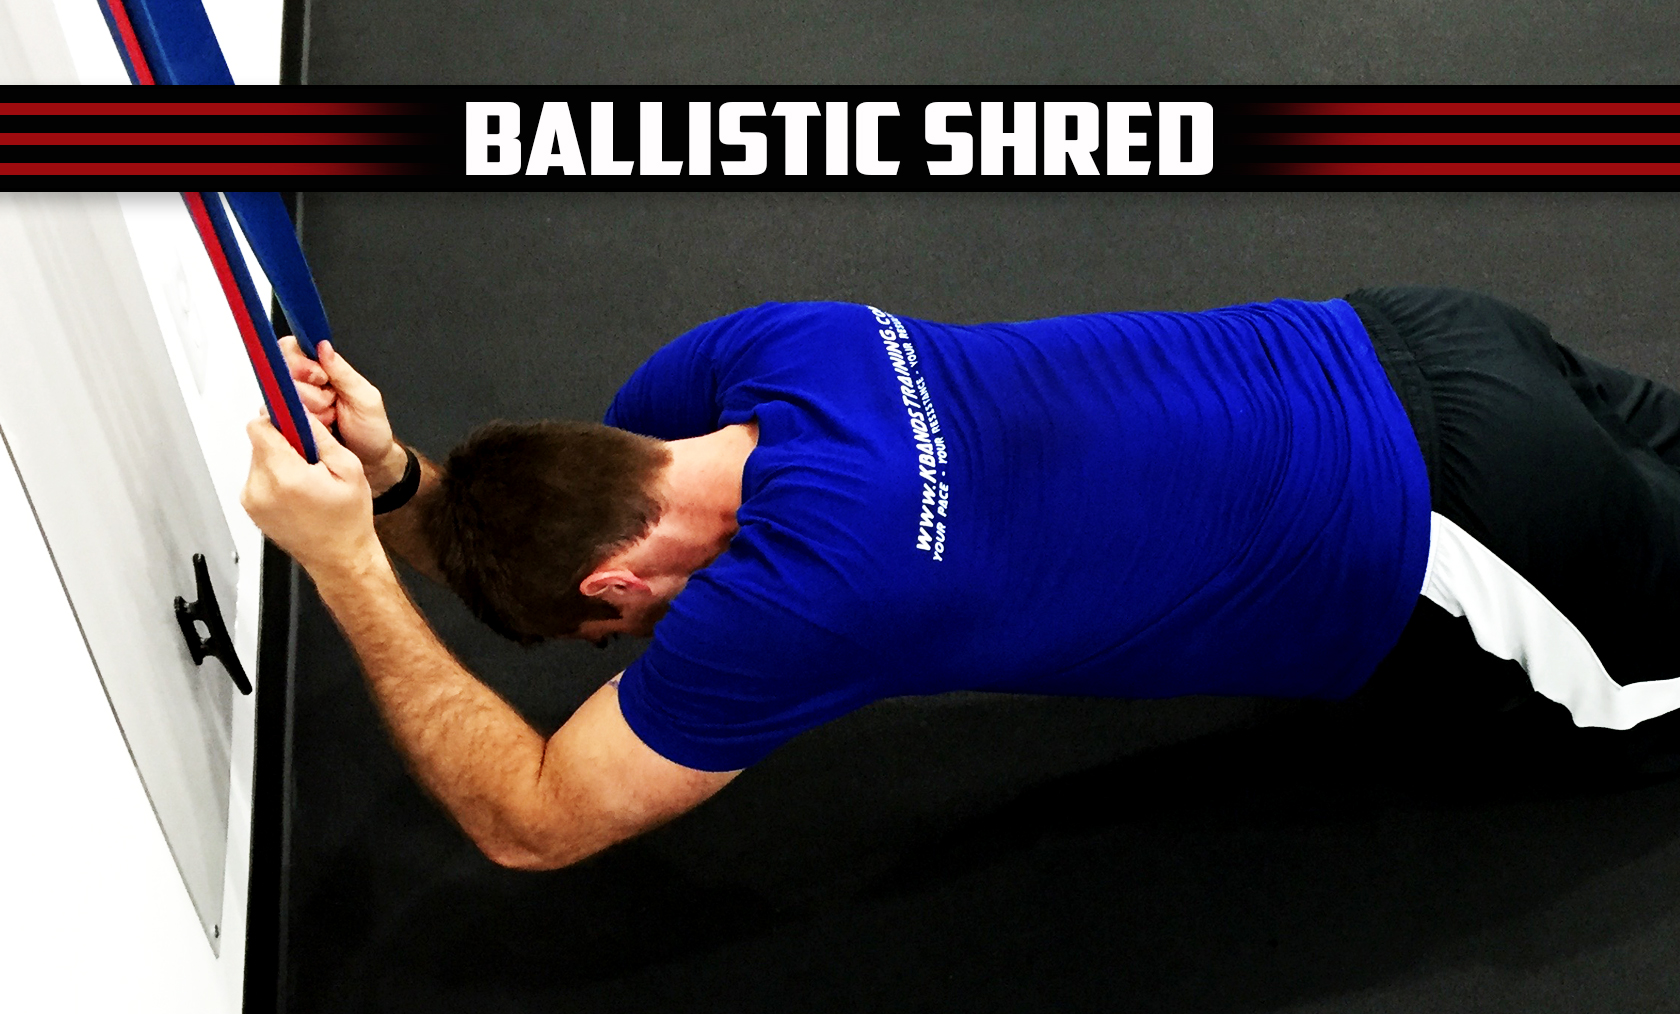 Ballistic Shred Digital Trainer